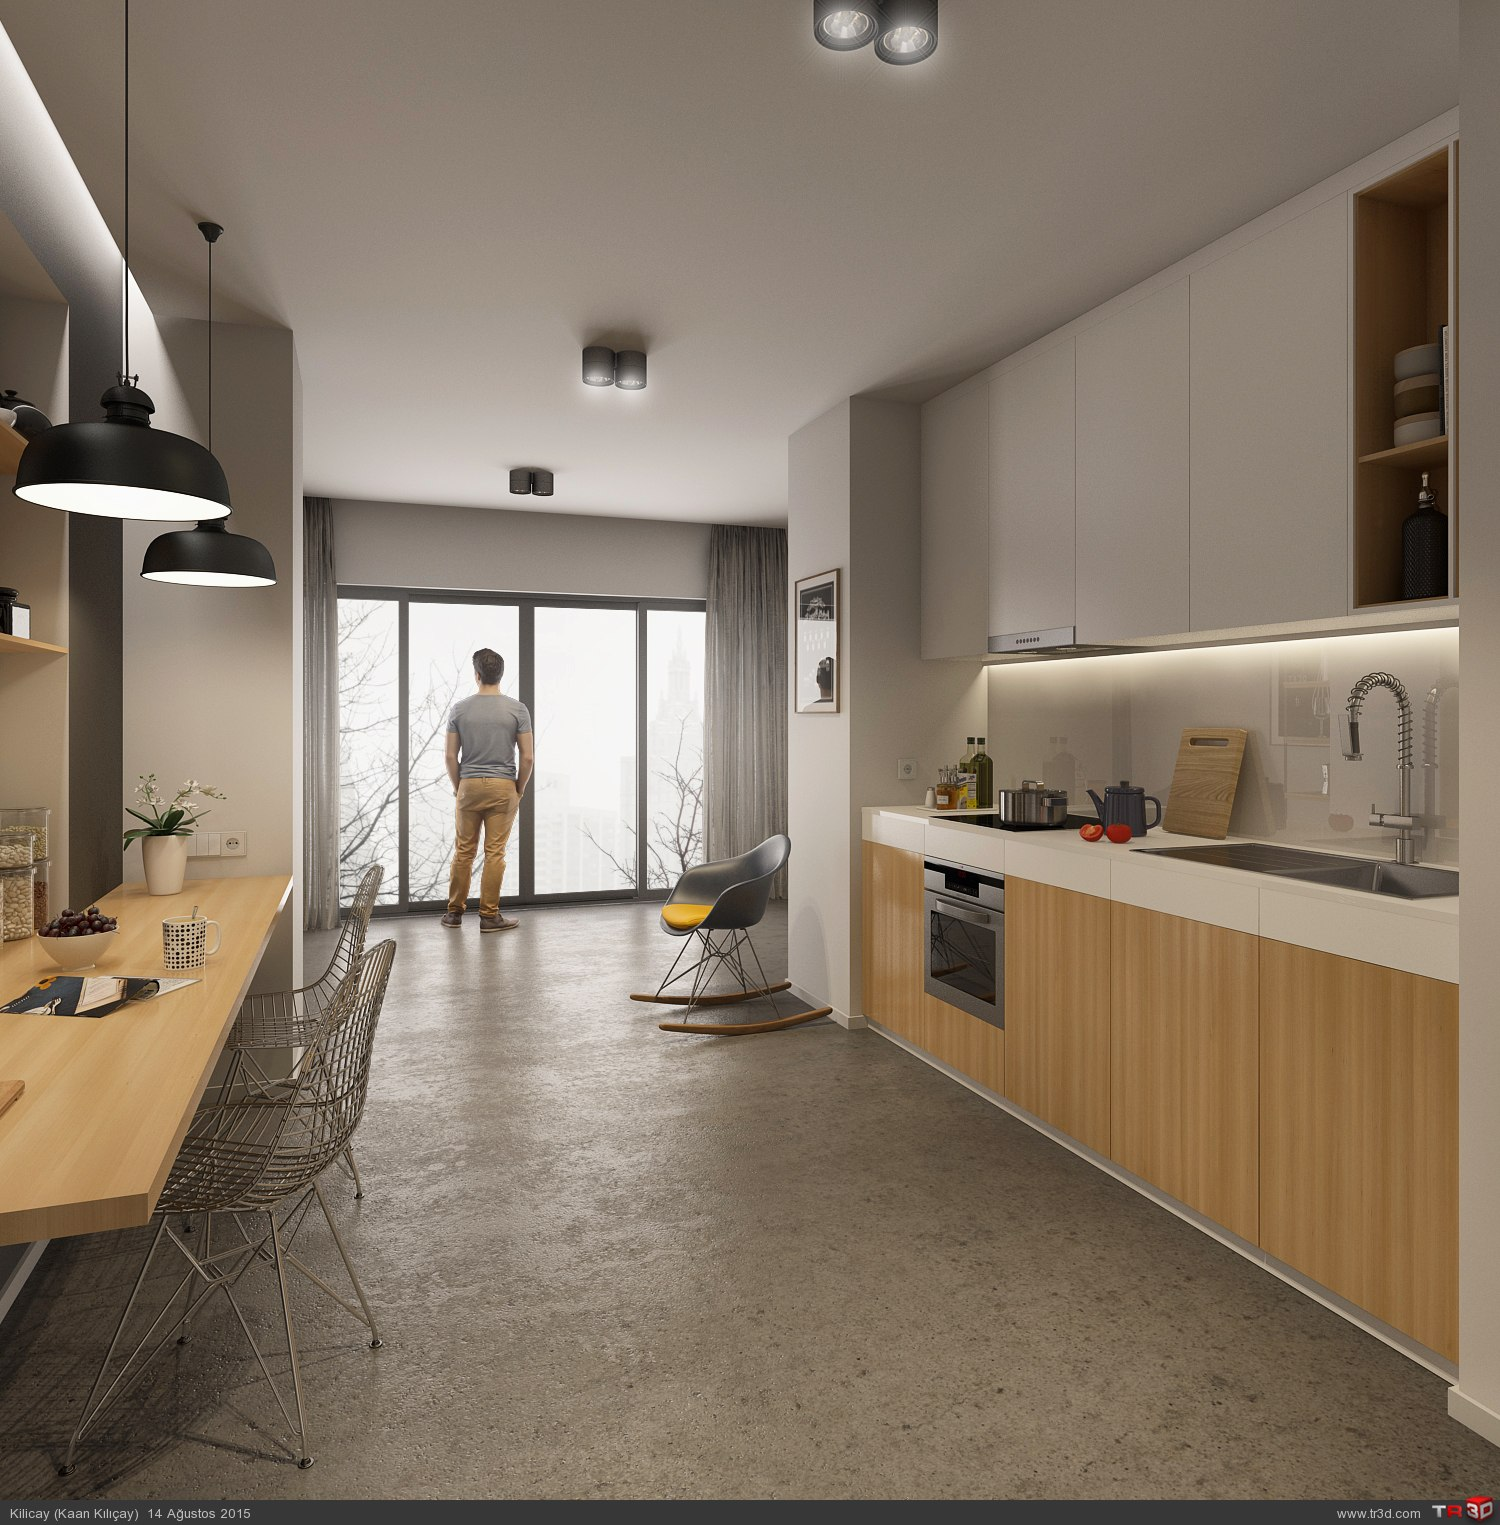 Kitchen - CGI